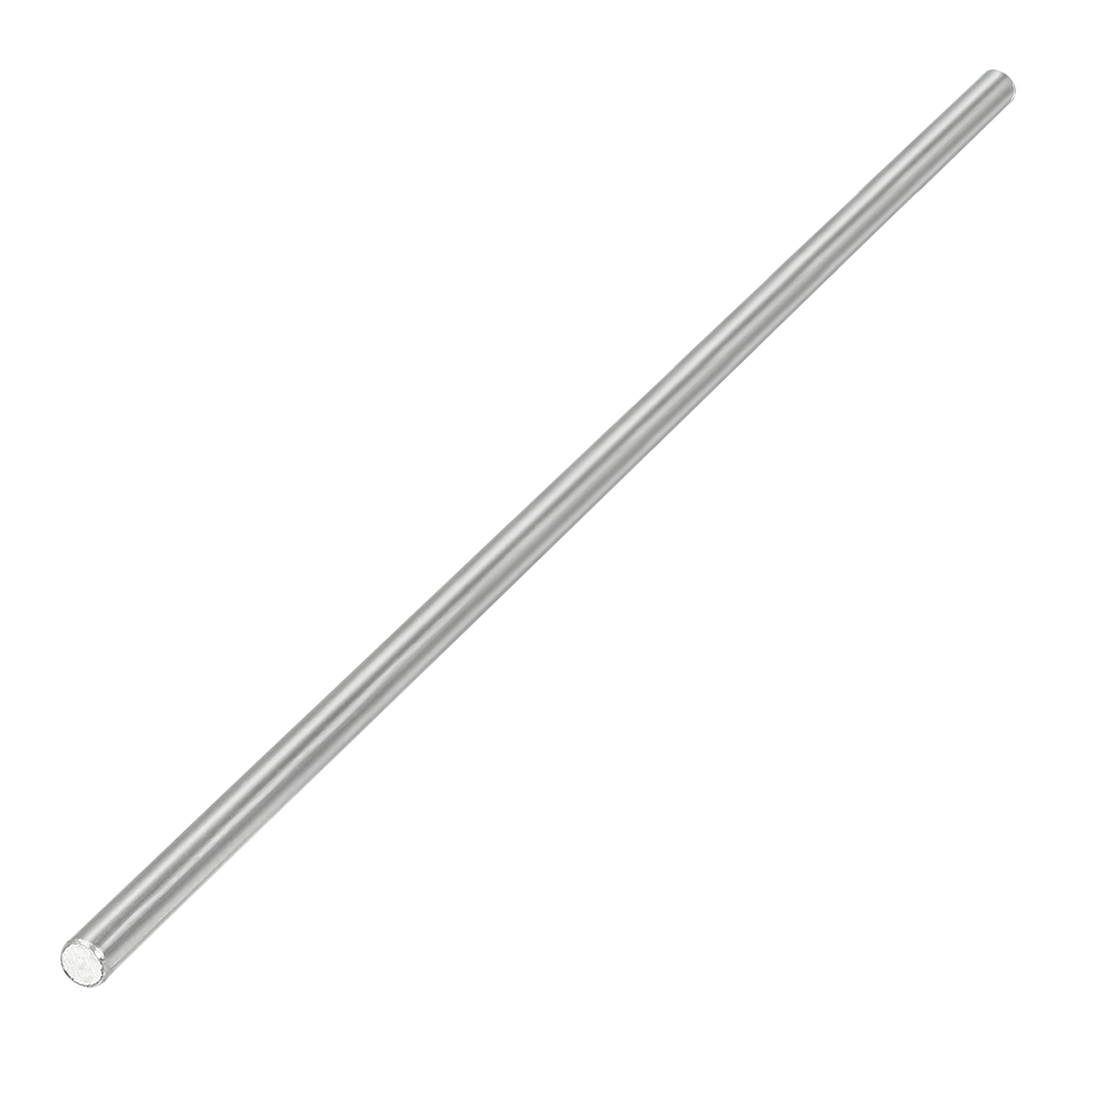 2mm Dia 140mm Length Stainless Steel Solid Round Shaft Rod for RC Model Toy